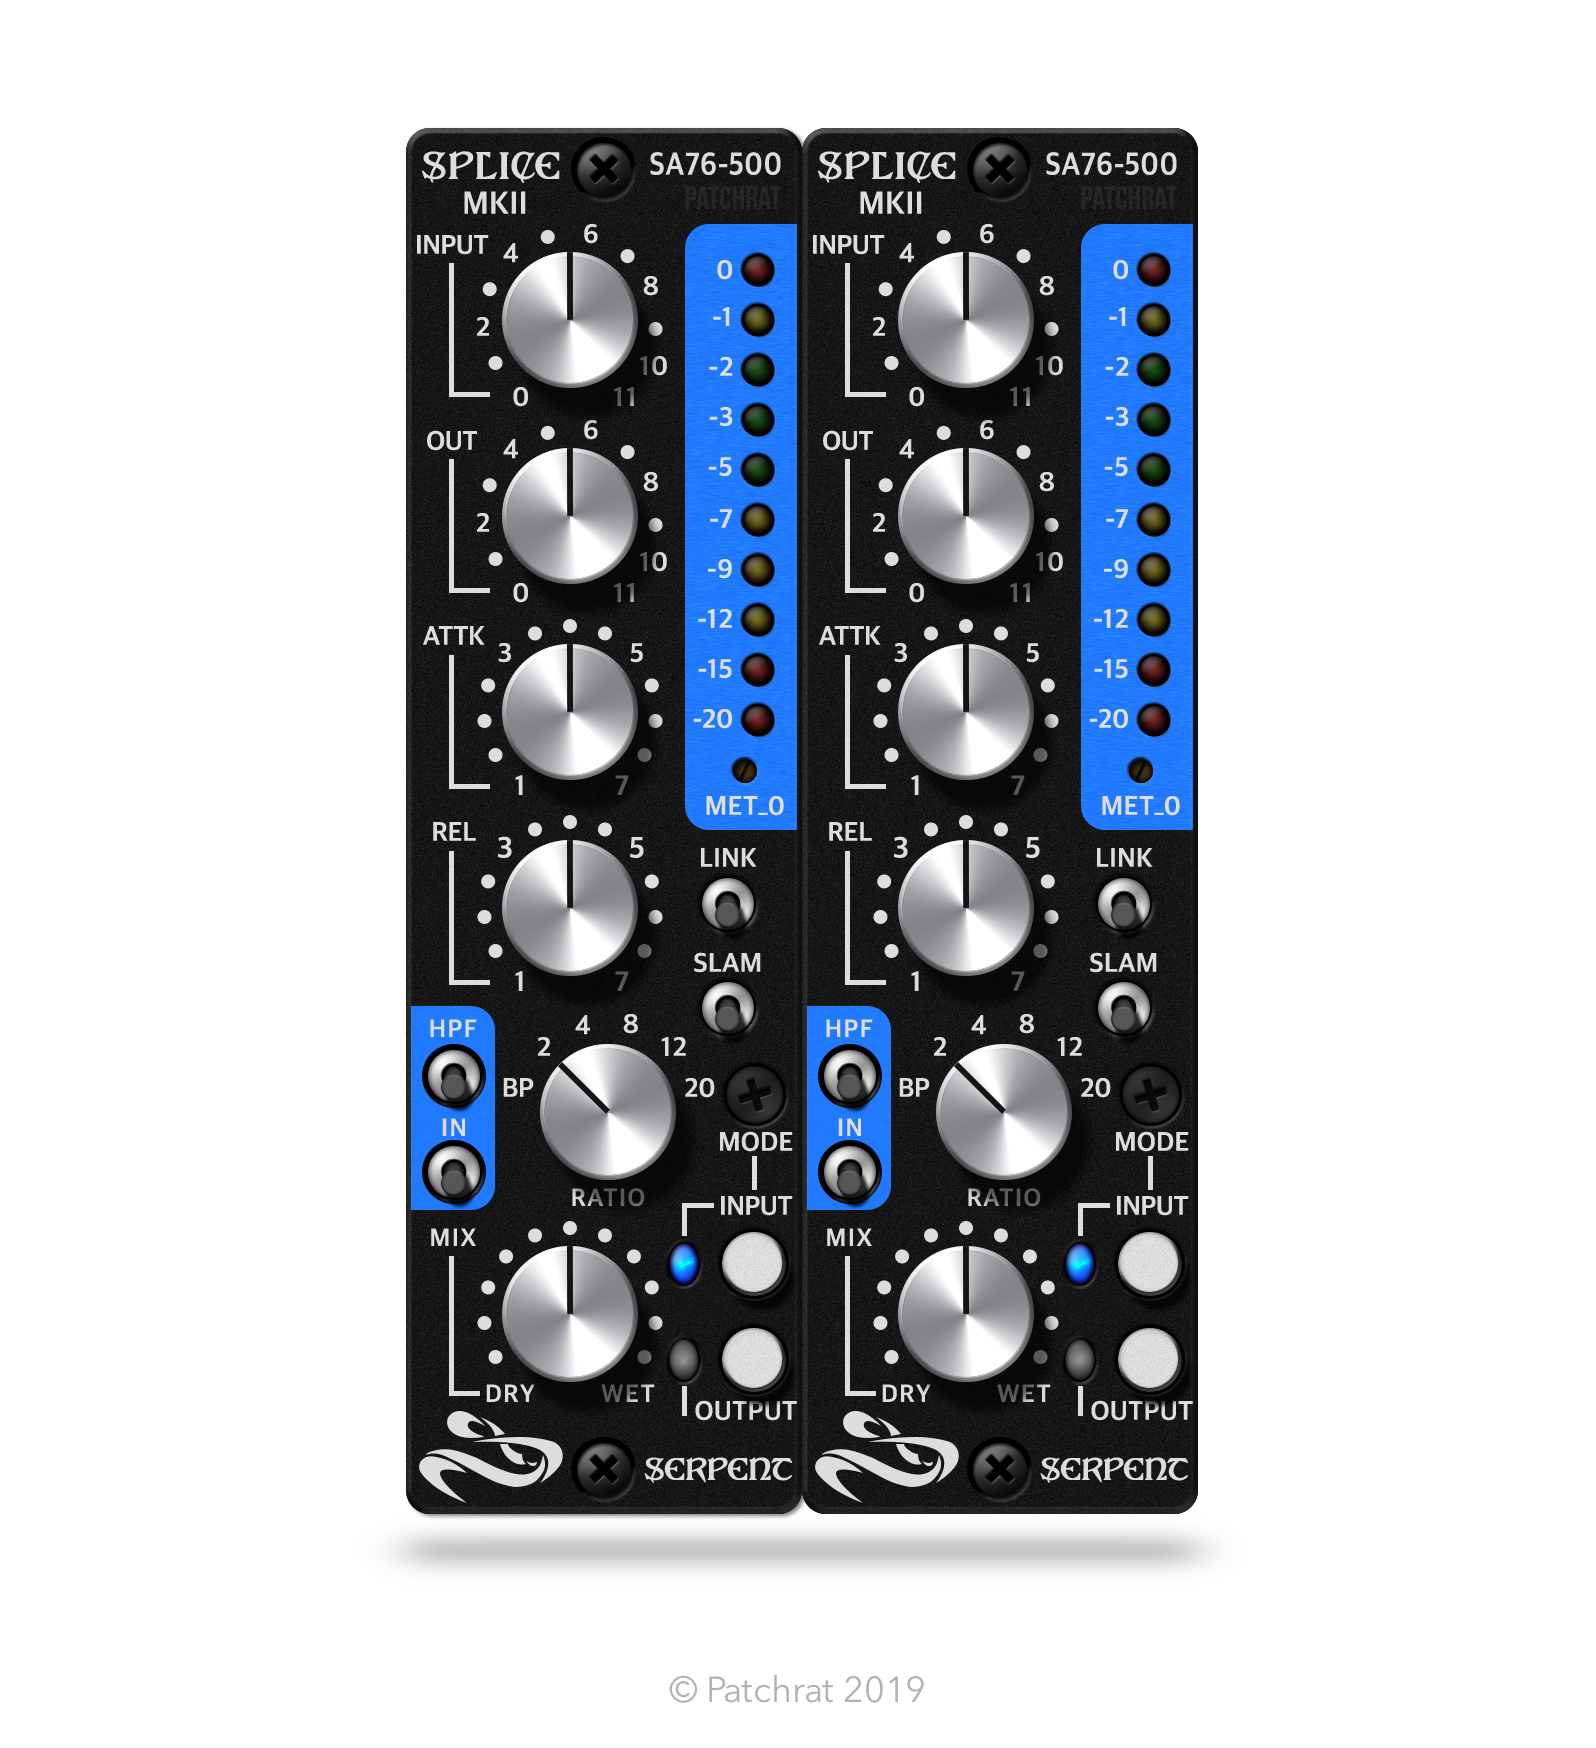 Serpent Audio SA76-500 Splice MKII (Pair) recall interface for the Patchrat app